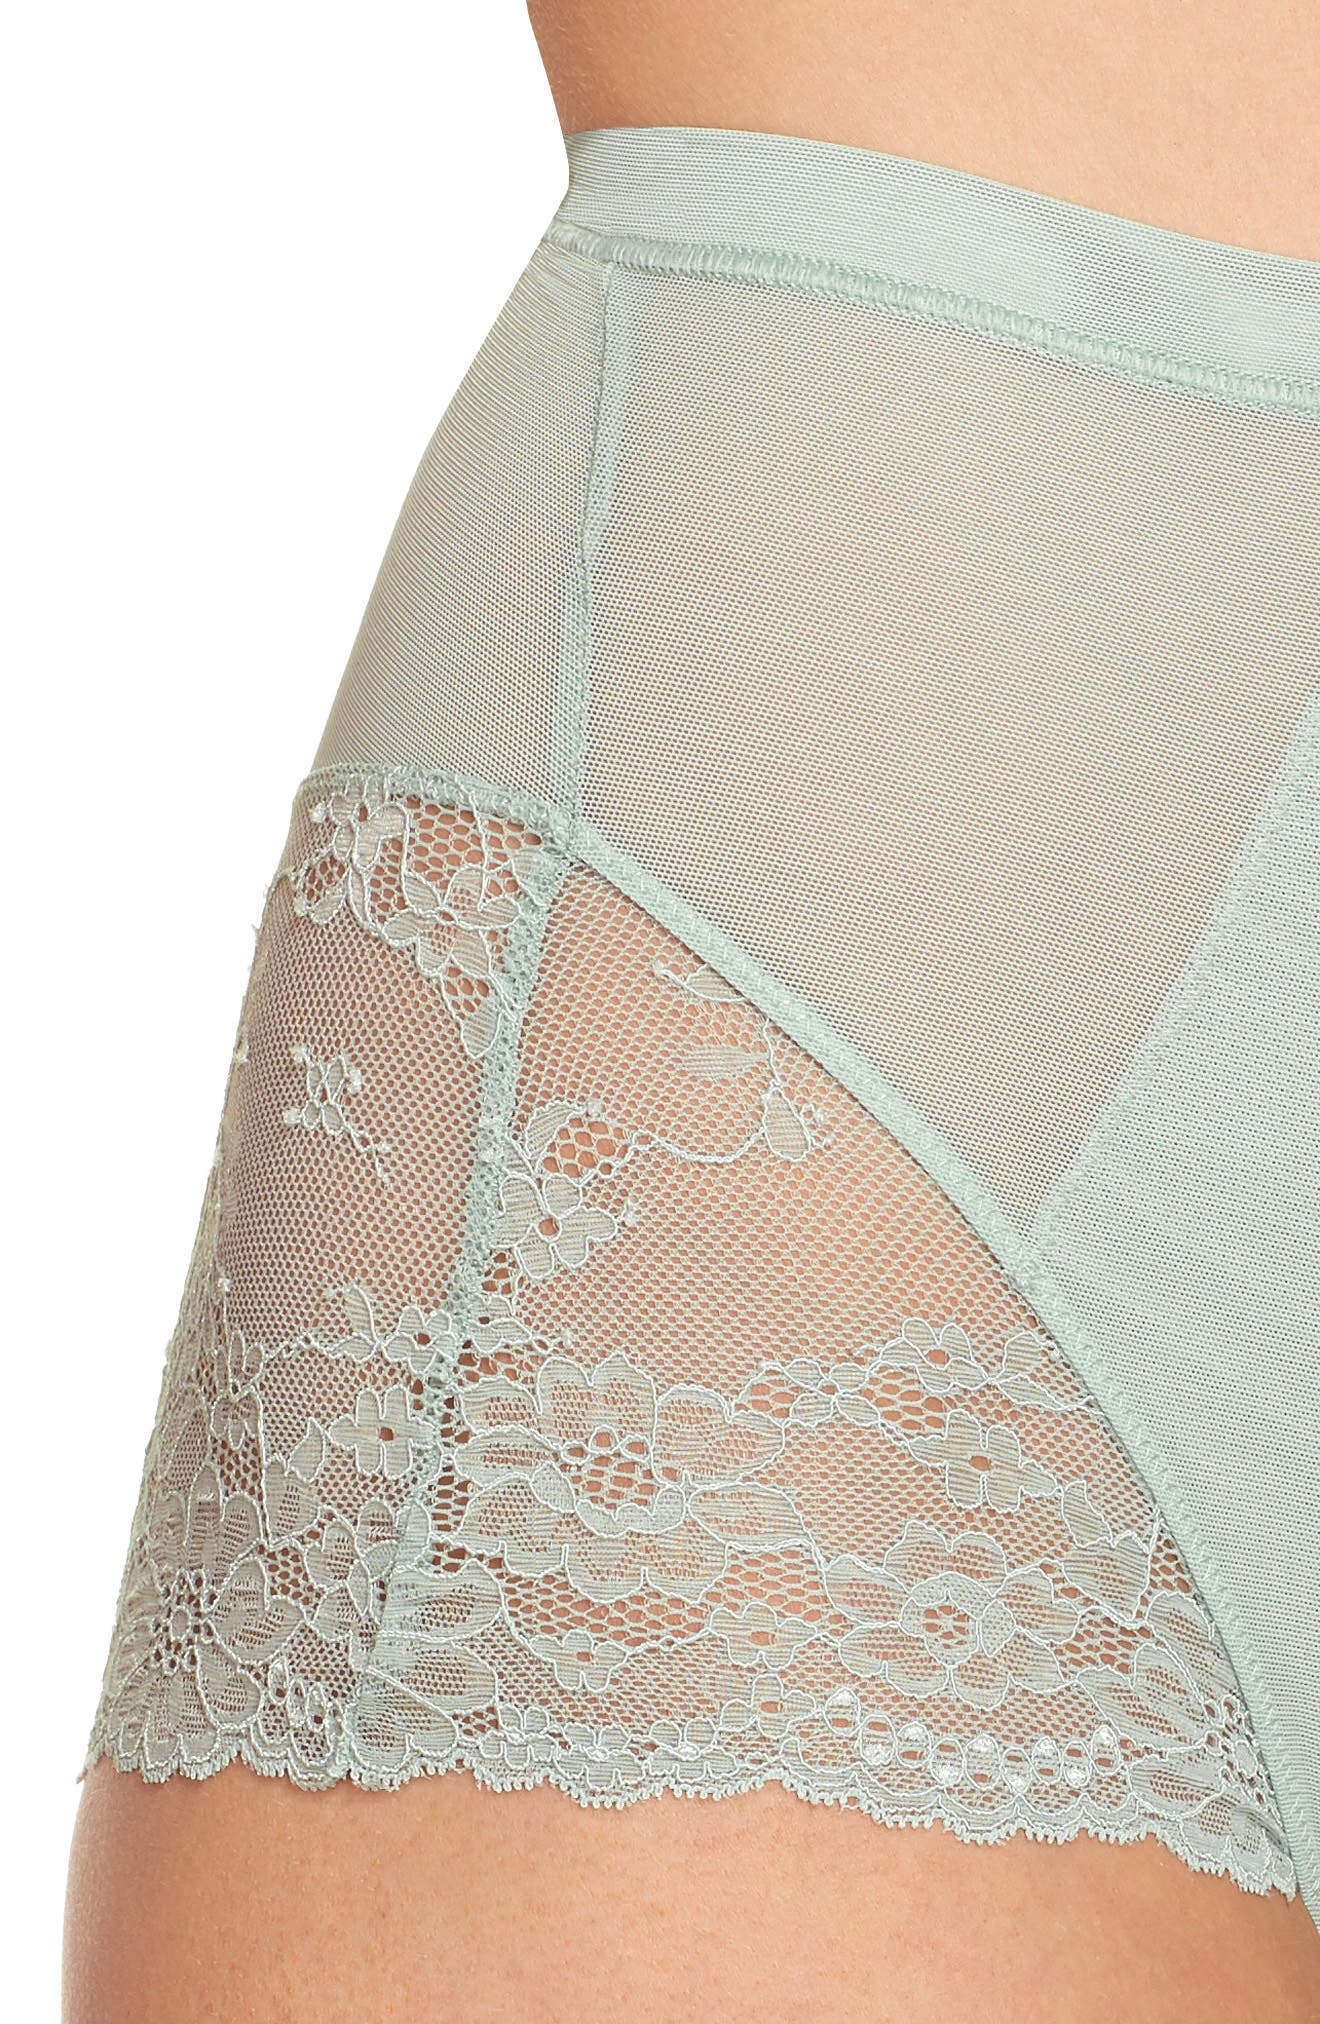 Spotlight On Lace Briefs,                             Alternate thumbnail 7, color,                             Seafoam Green